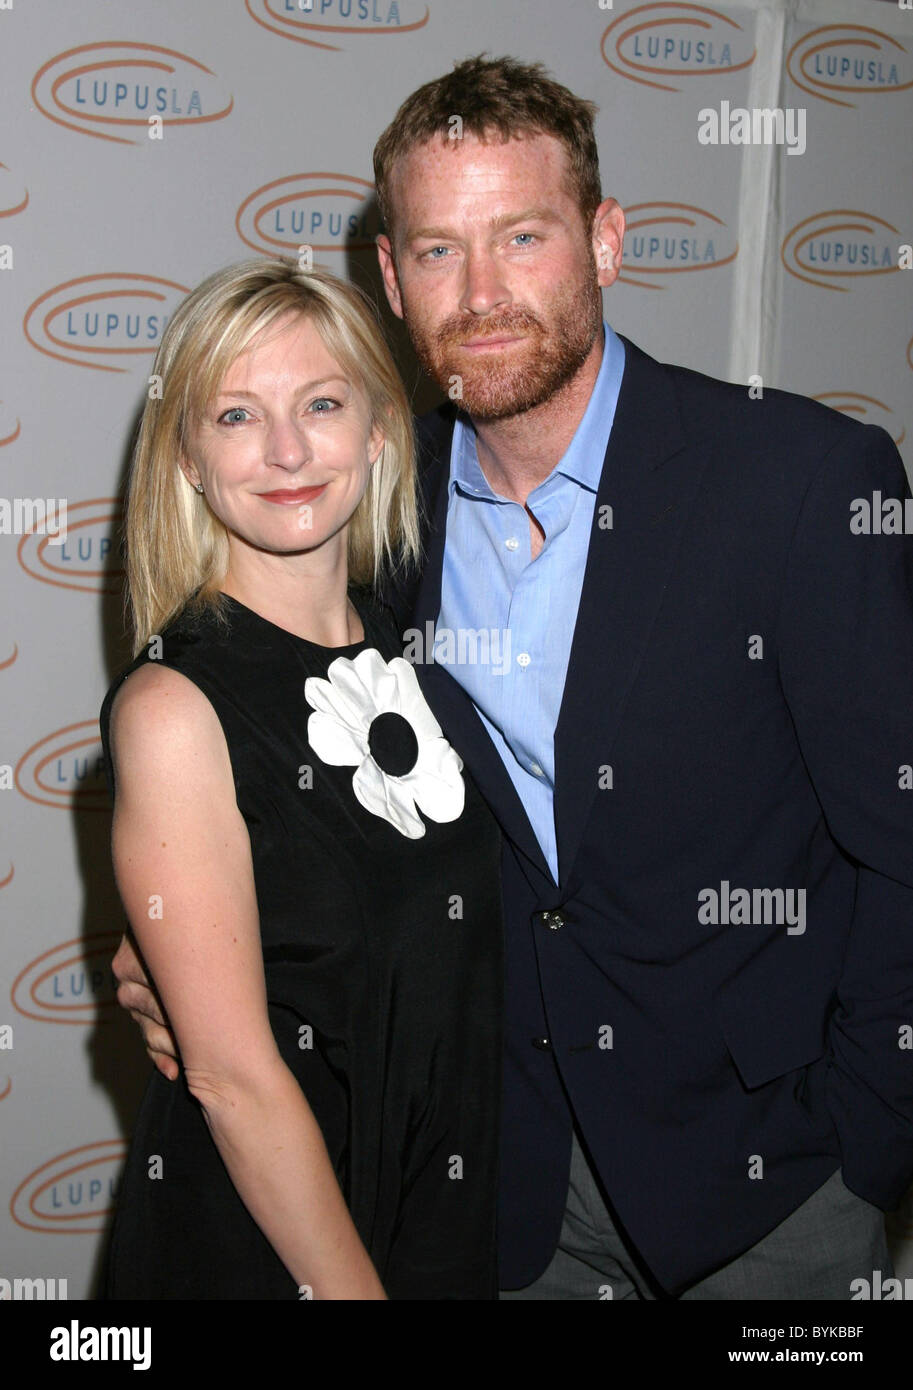 Max Martini and wife 7th Annual 'Love, Light and Laughter